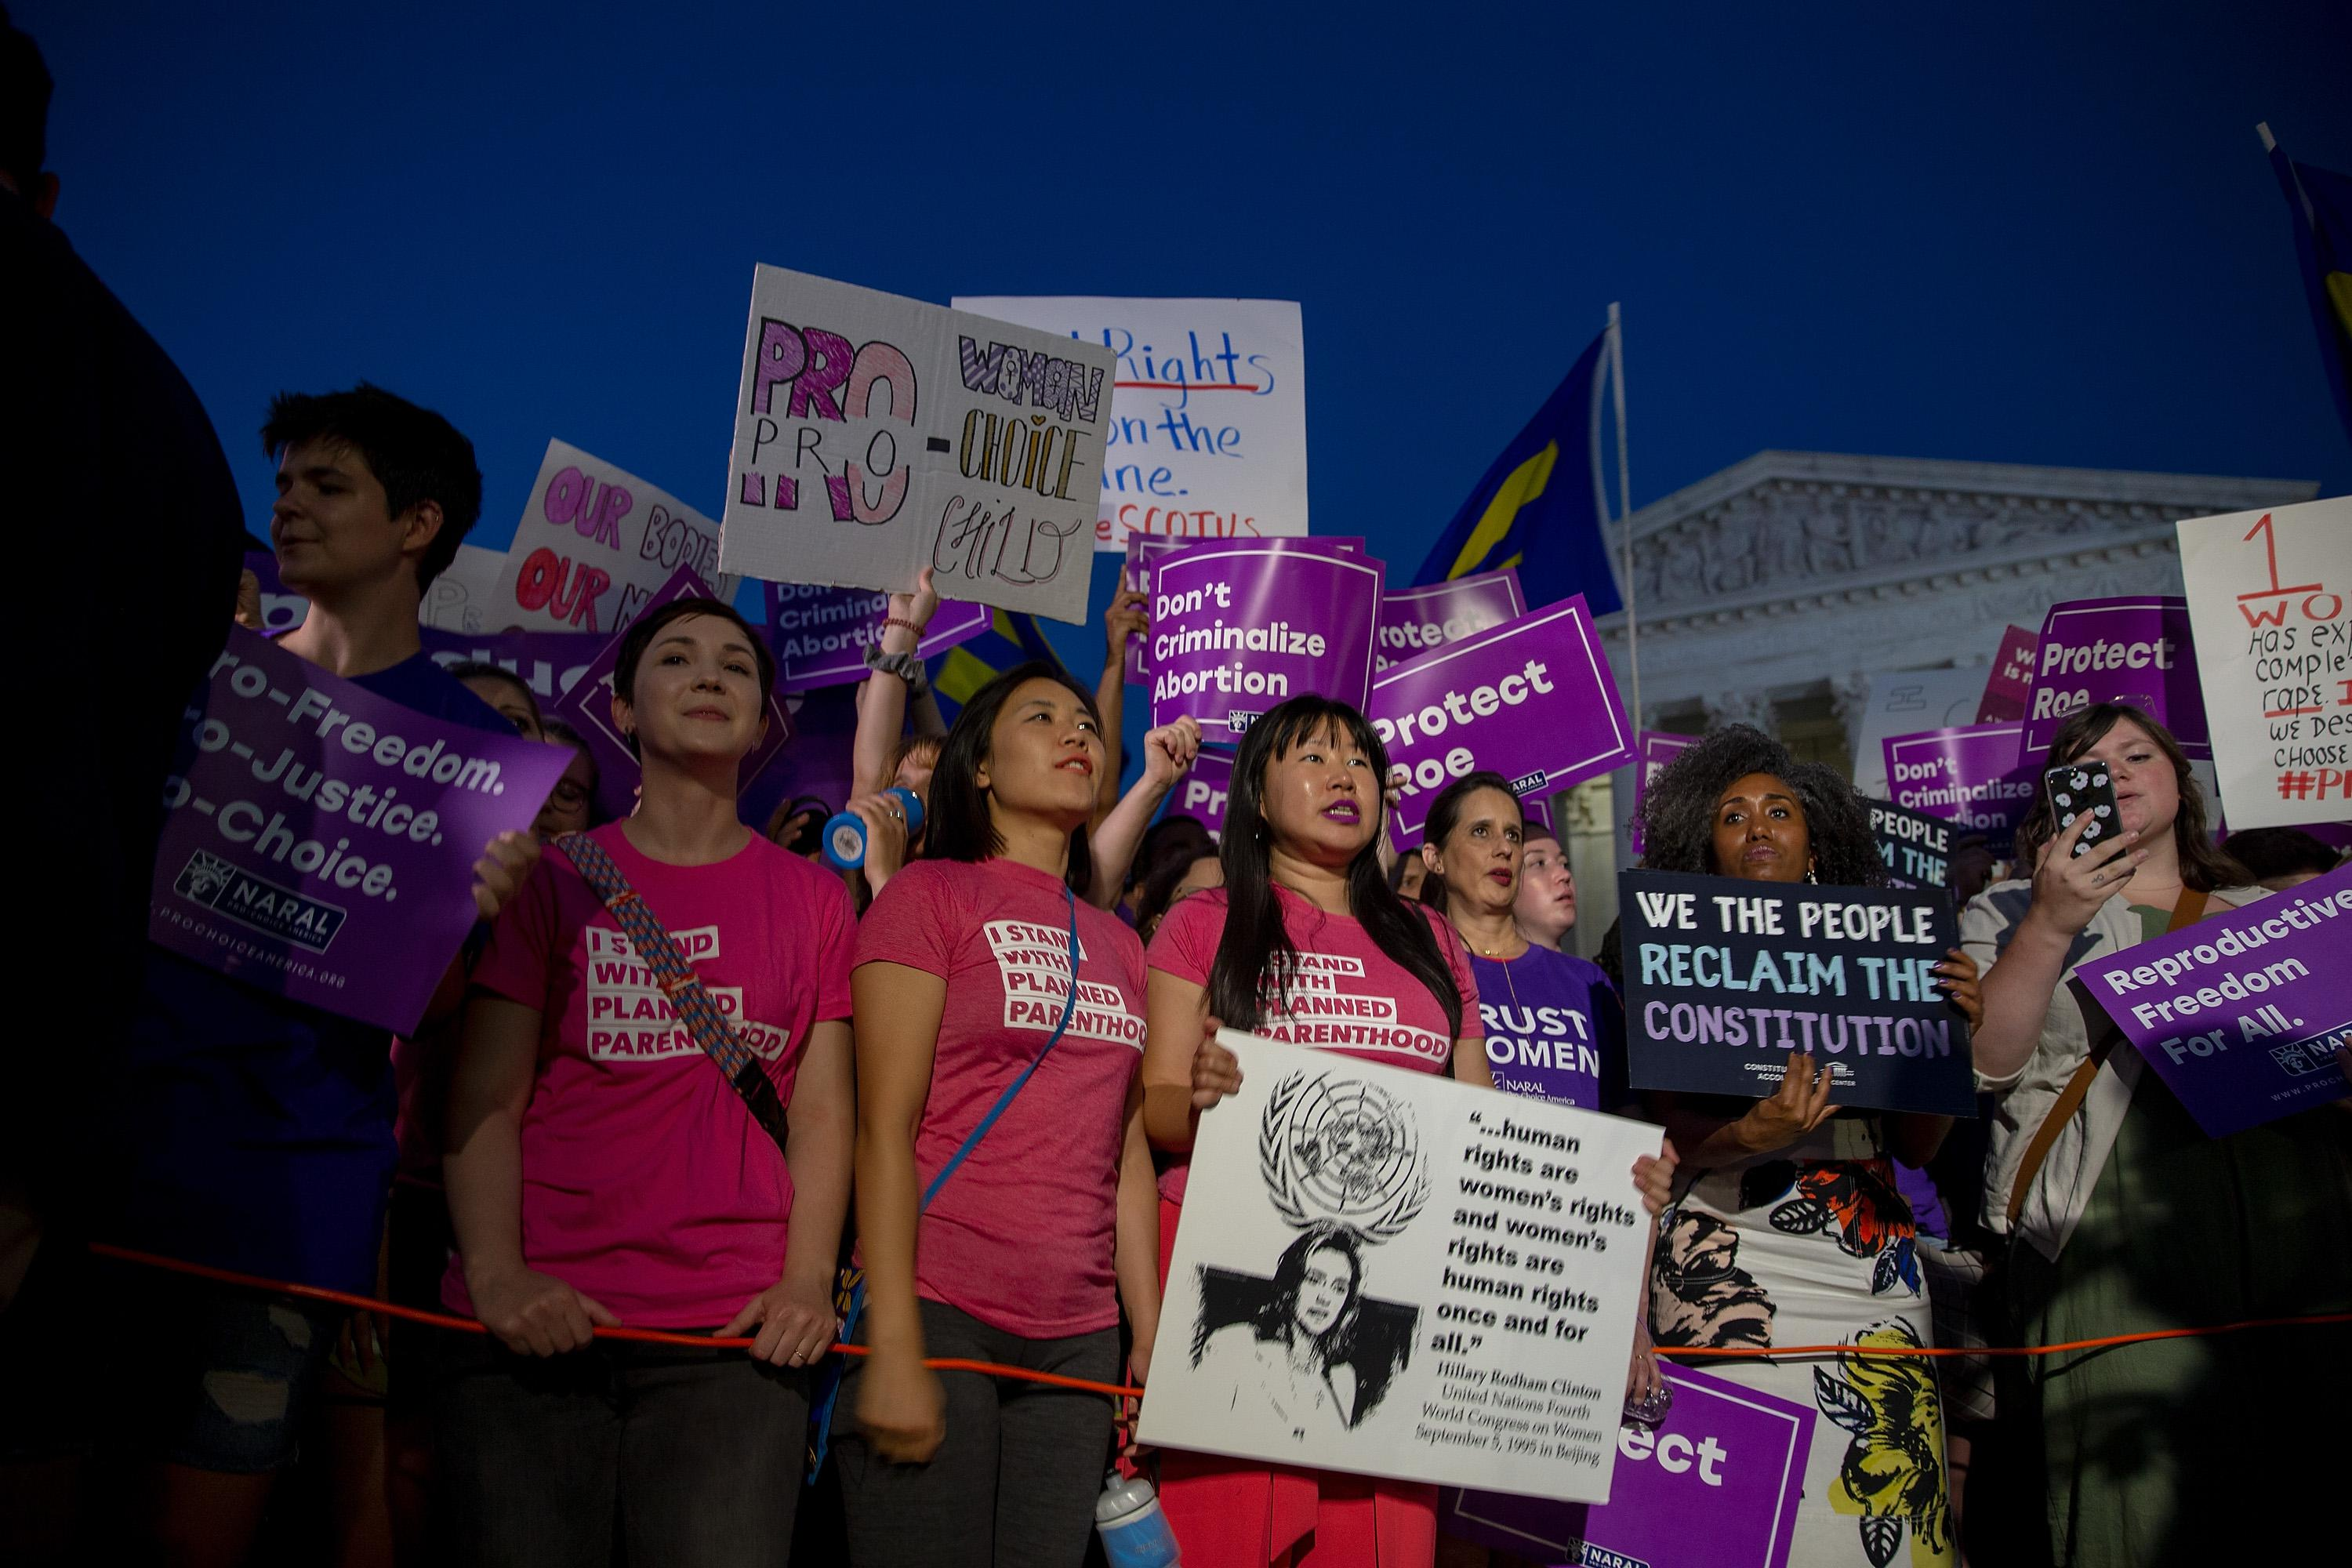 Pro-choice and anti-abortion protesters demonstrate in front of the U.S. Supreme Court on July 9, 2018.